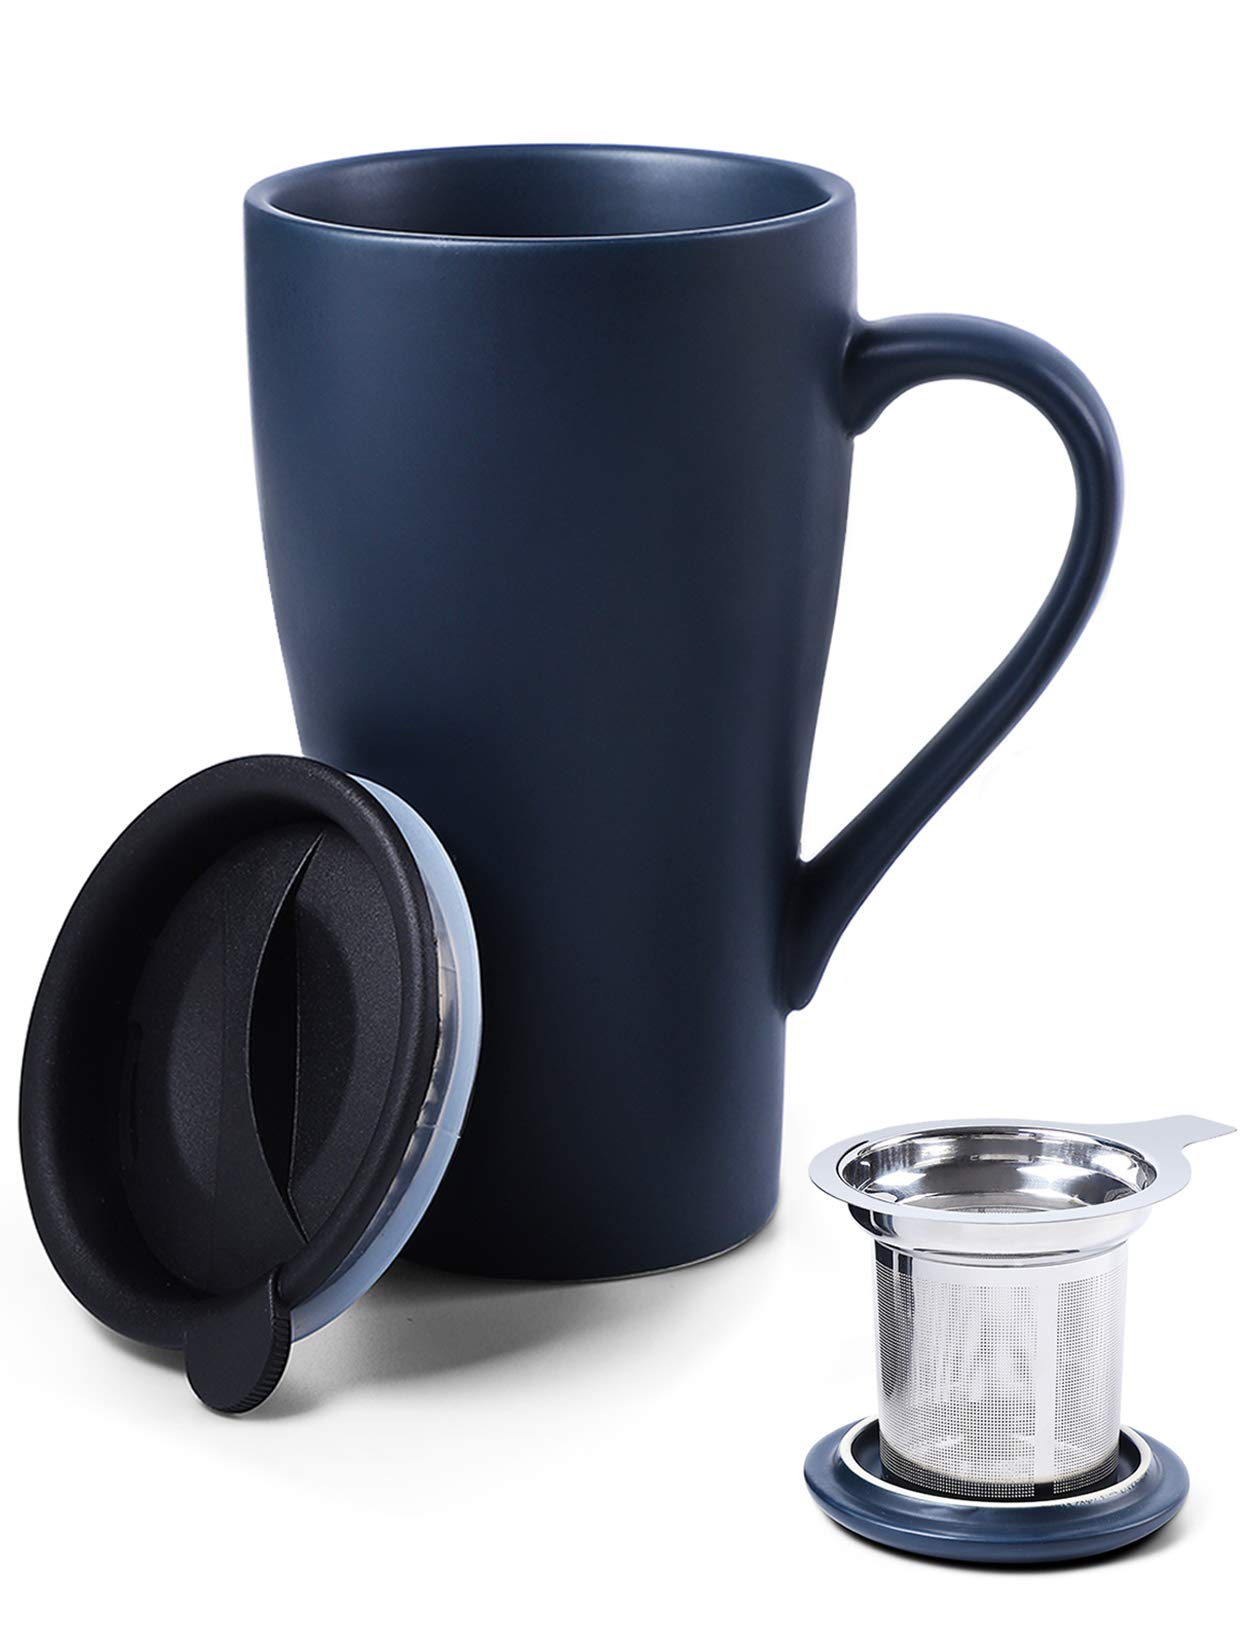 ARRADEN Tea Cup with Infuser and 2 Lids, 18oz Large Tea Infuser Mug, Tea Strainer Cup for Loose Tea, Travel Mug with Tea Bag Holder (Royal Blue)